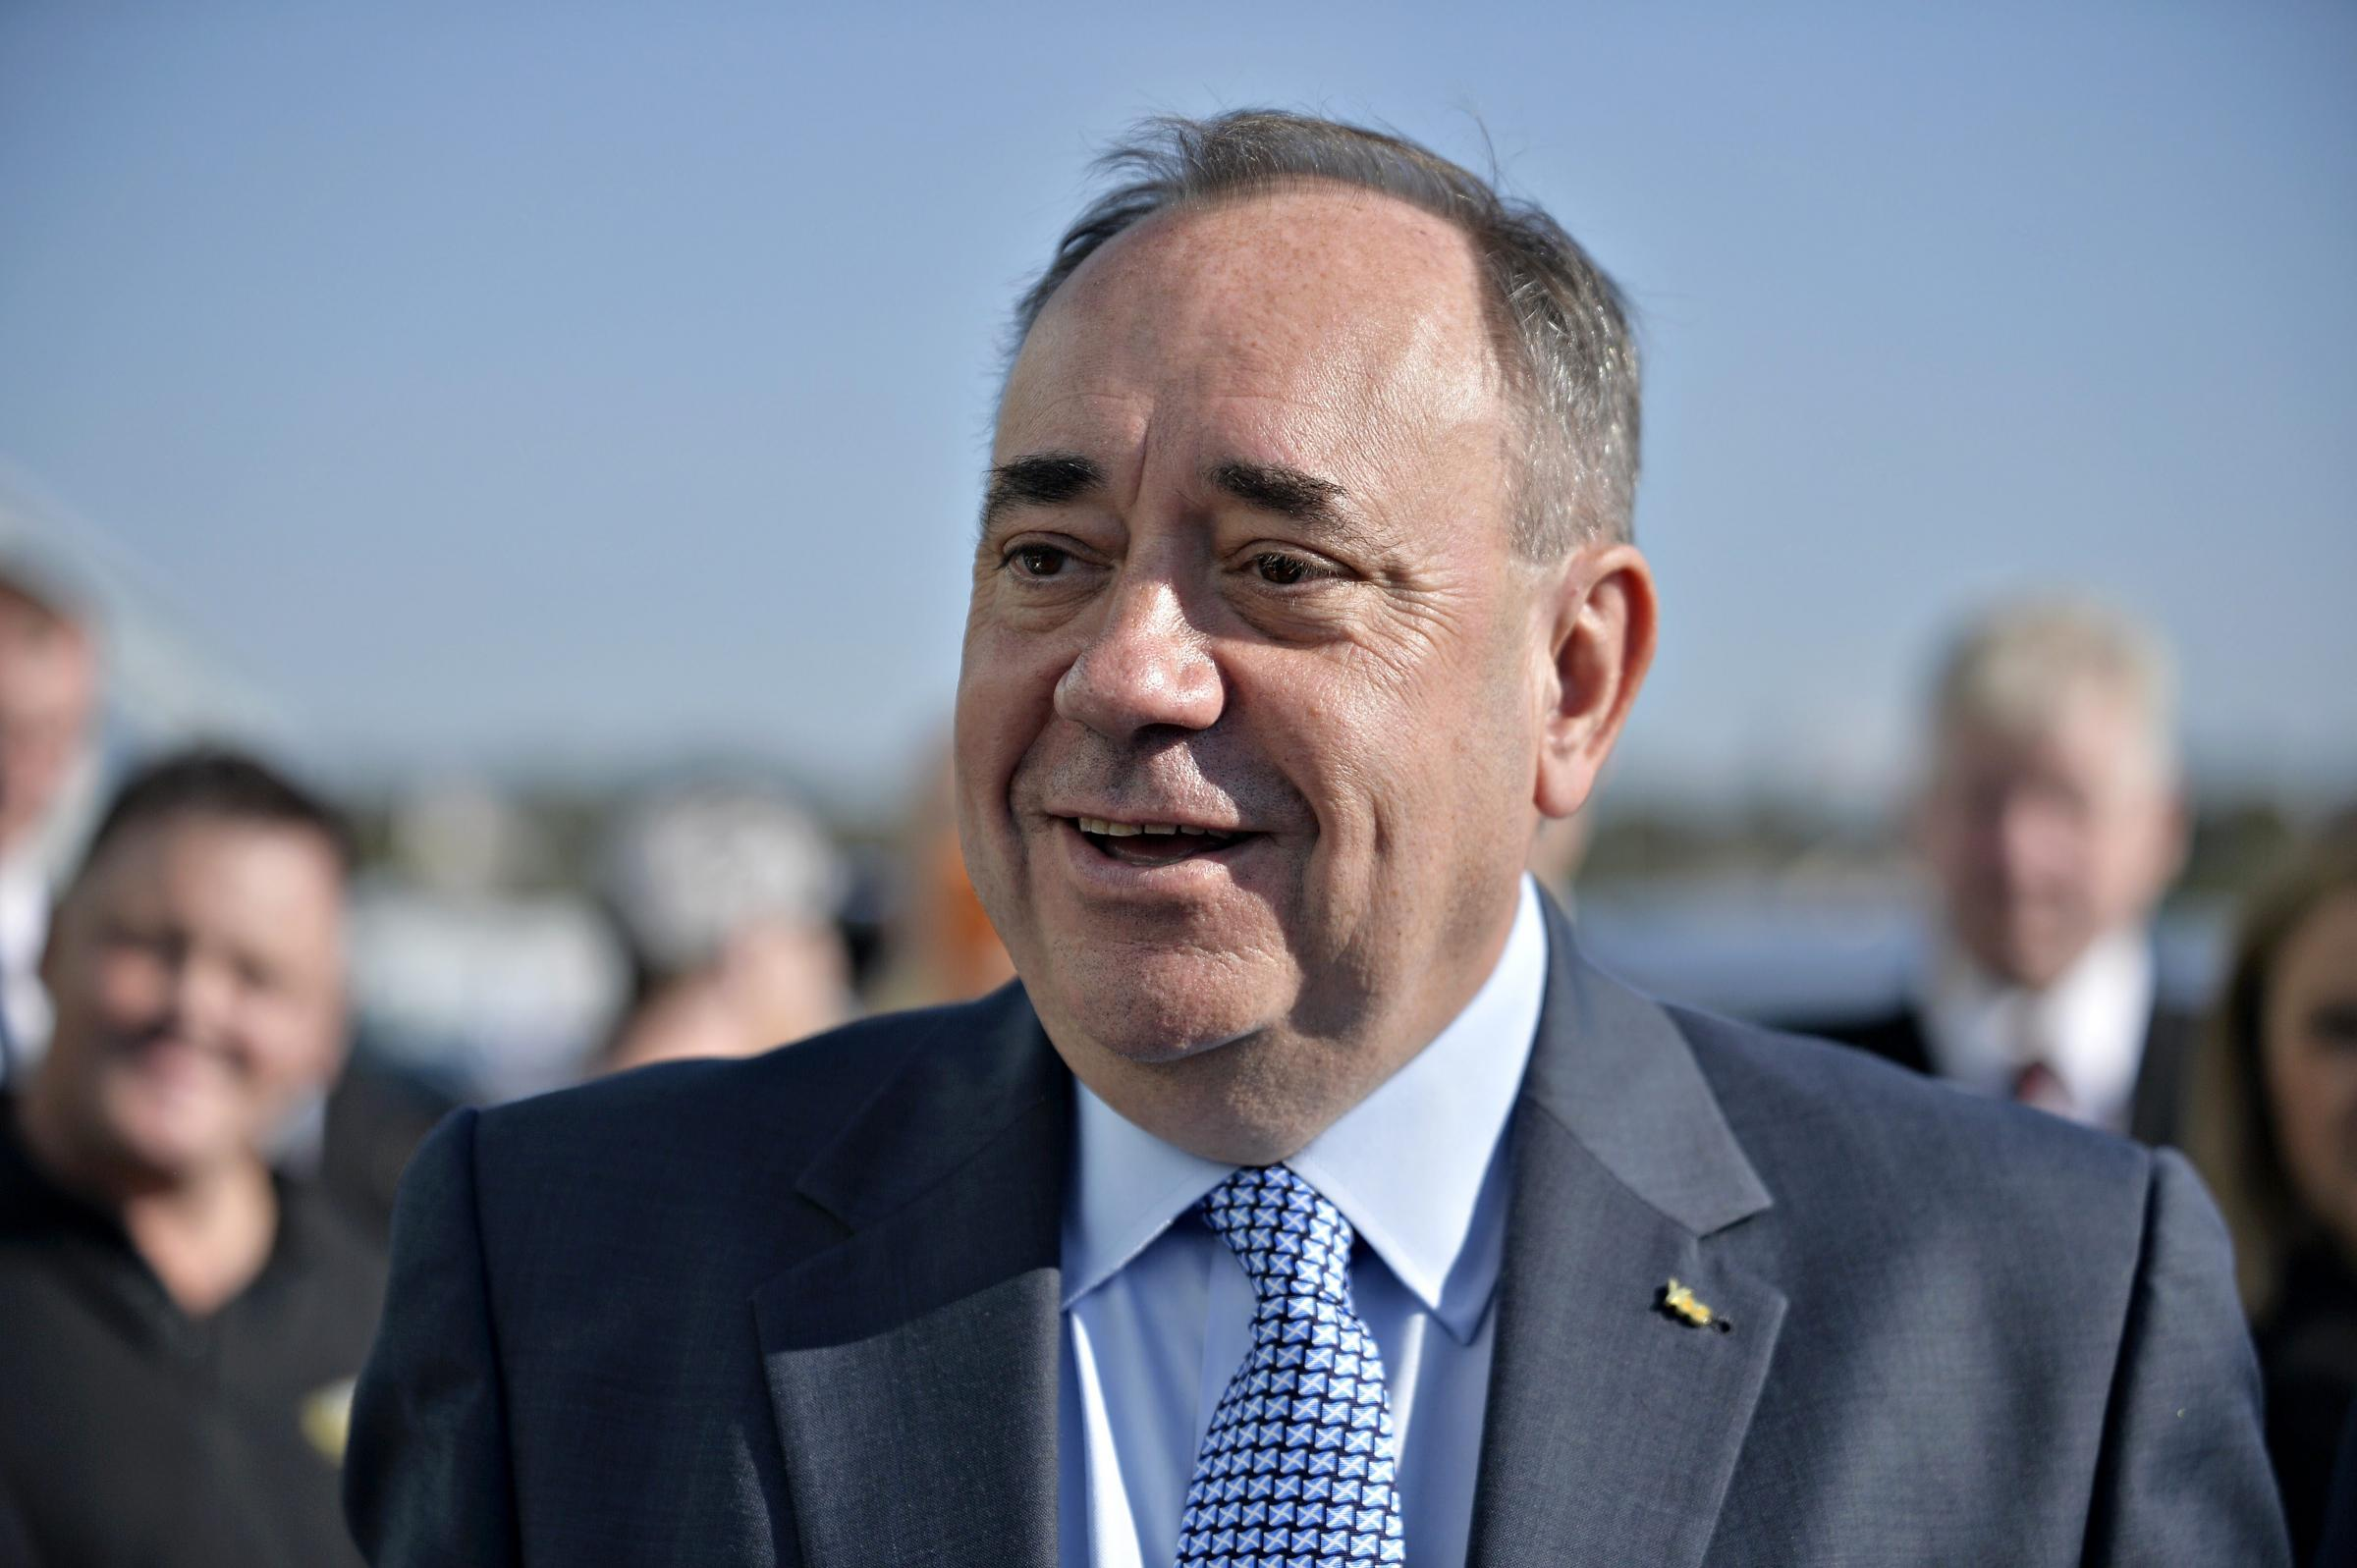 Salmond accuses Cameron over 'stealth' Syria bombing raids